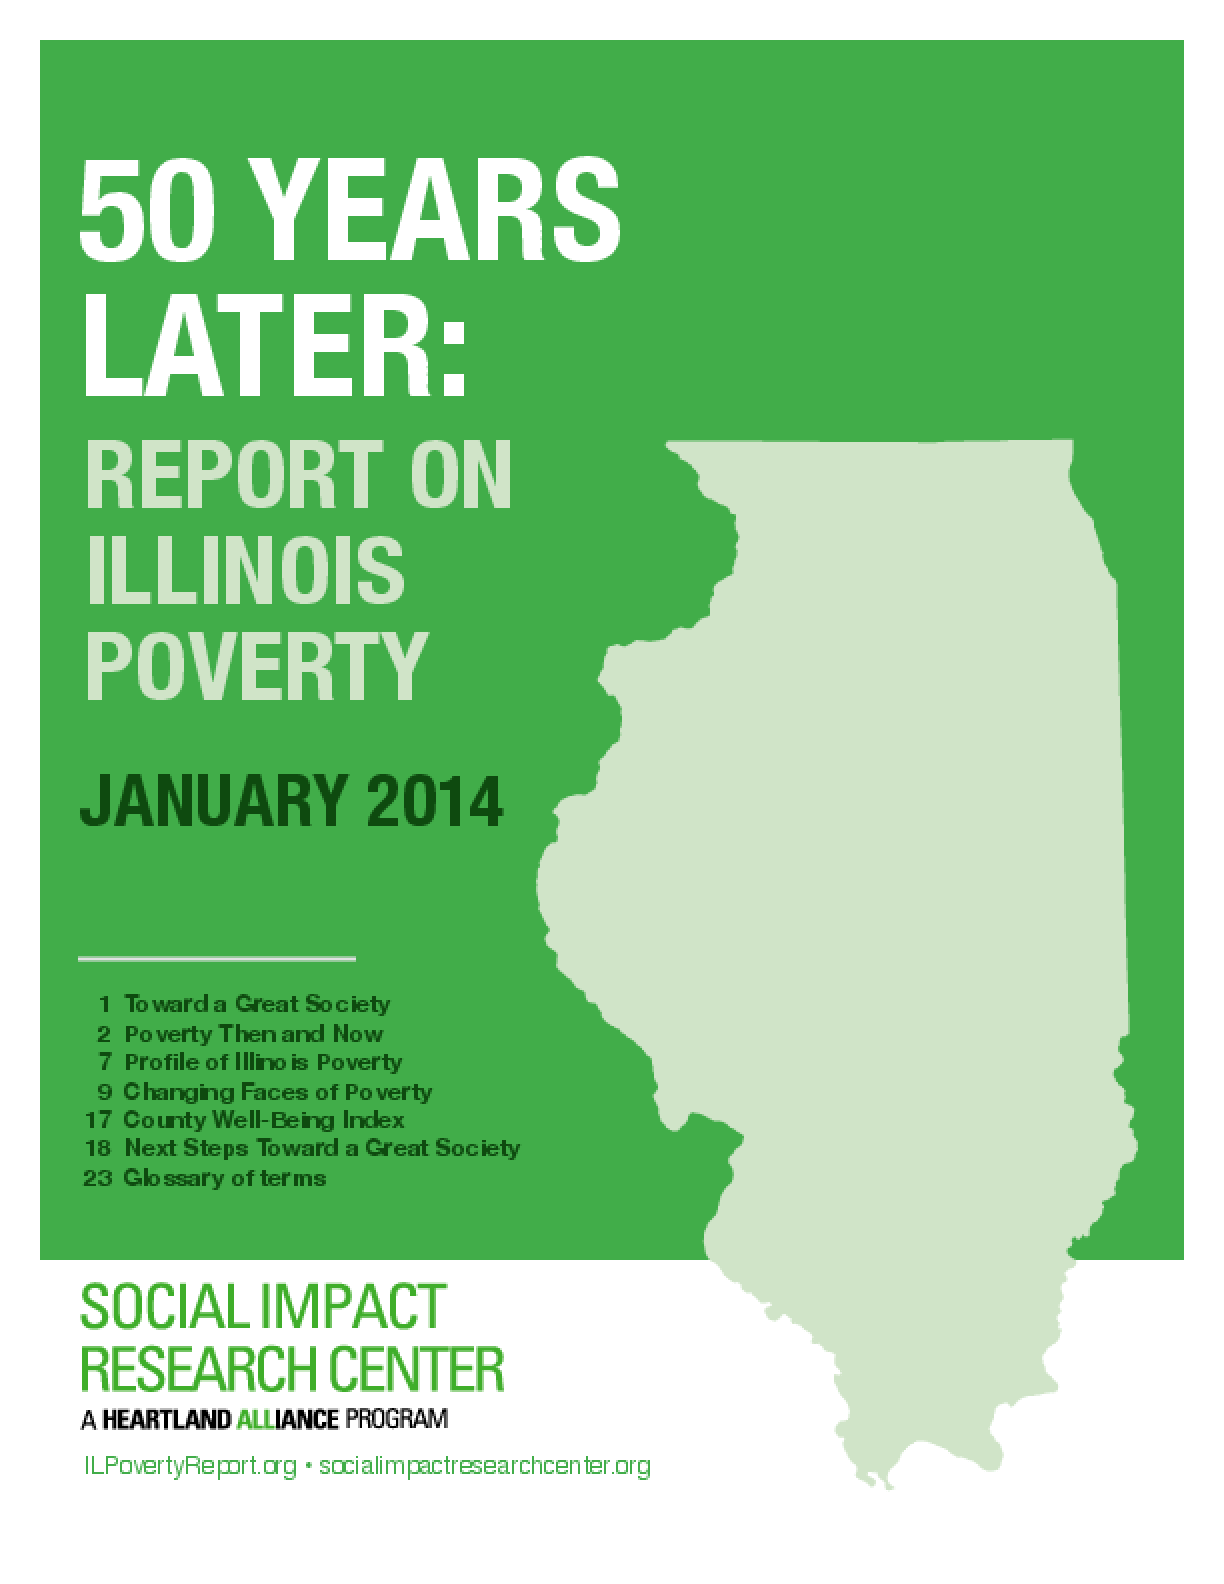 50 Years Later: Report on Illinois Poverty